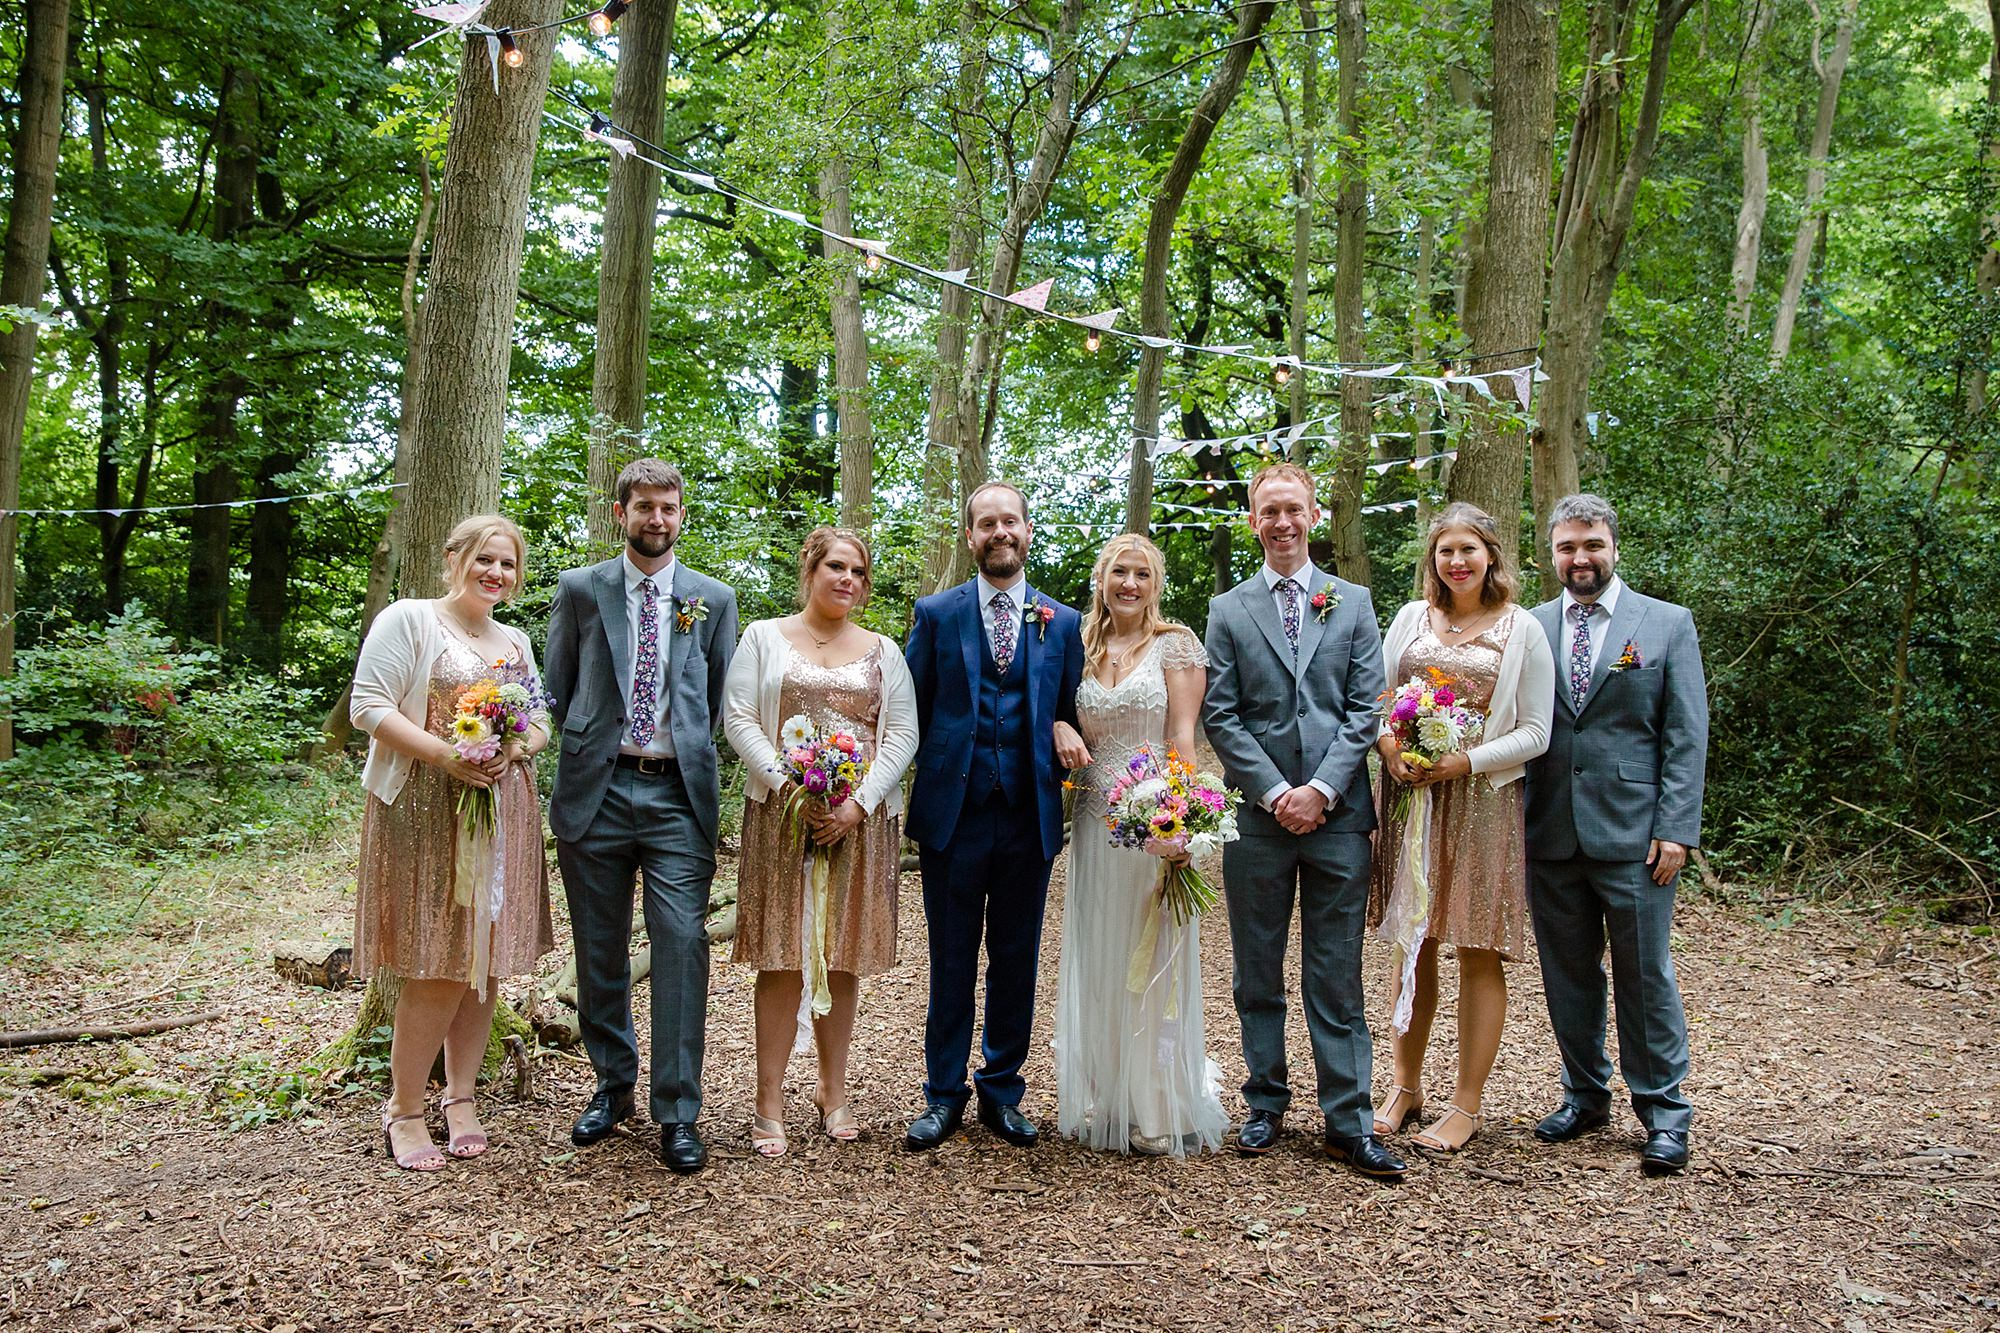 Woodland Weddings Tring bridal party